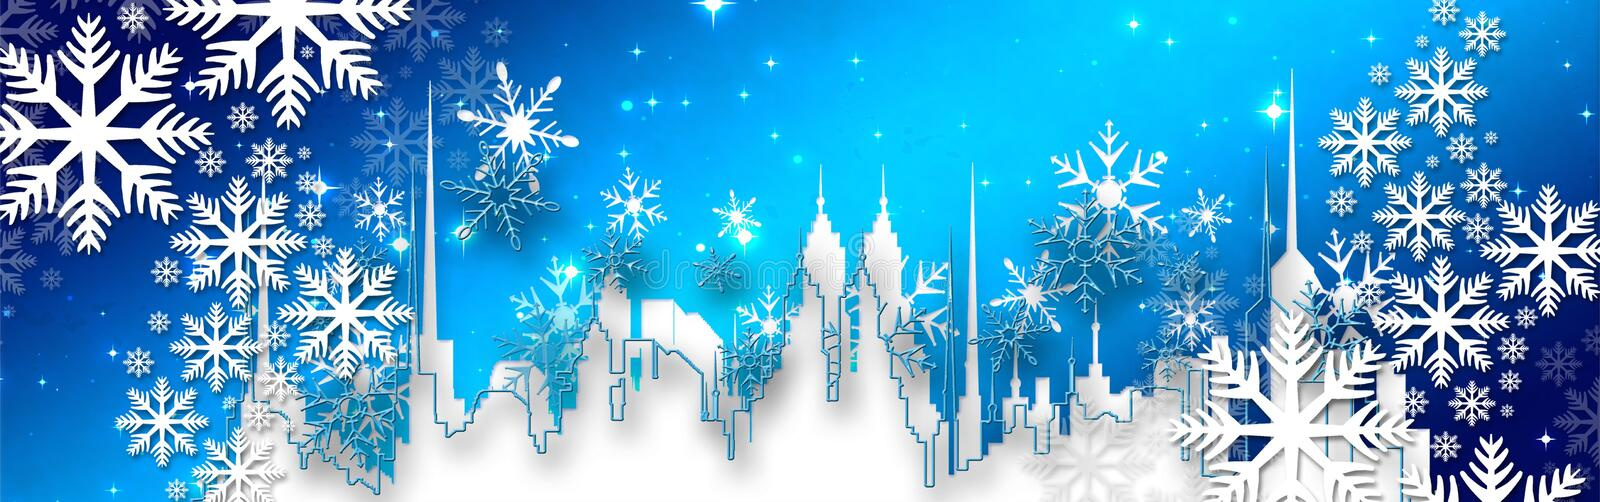 Christmas wishes, bow with stars and snow, background royalty free stock photo